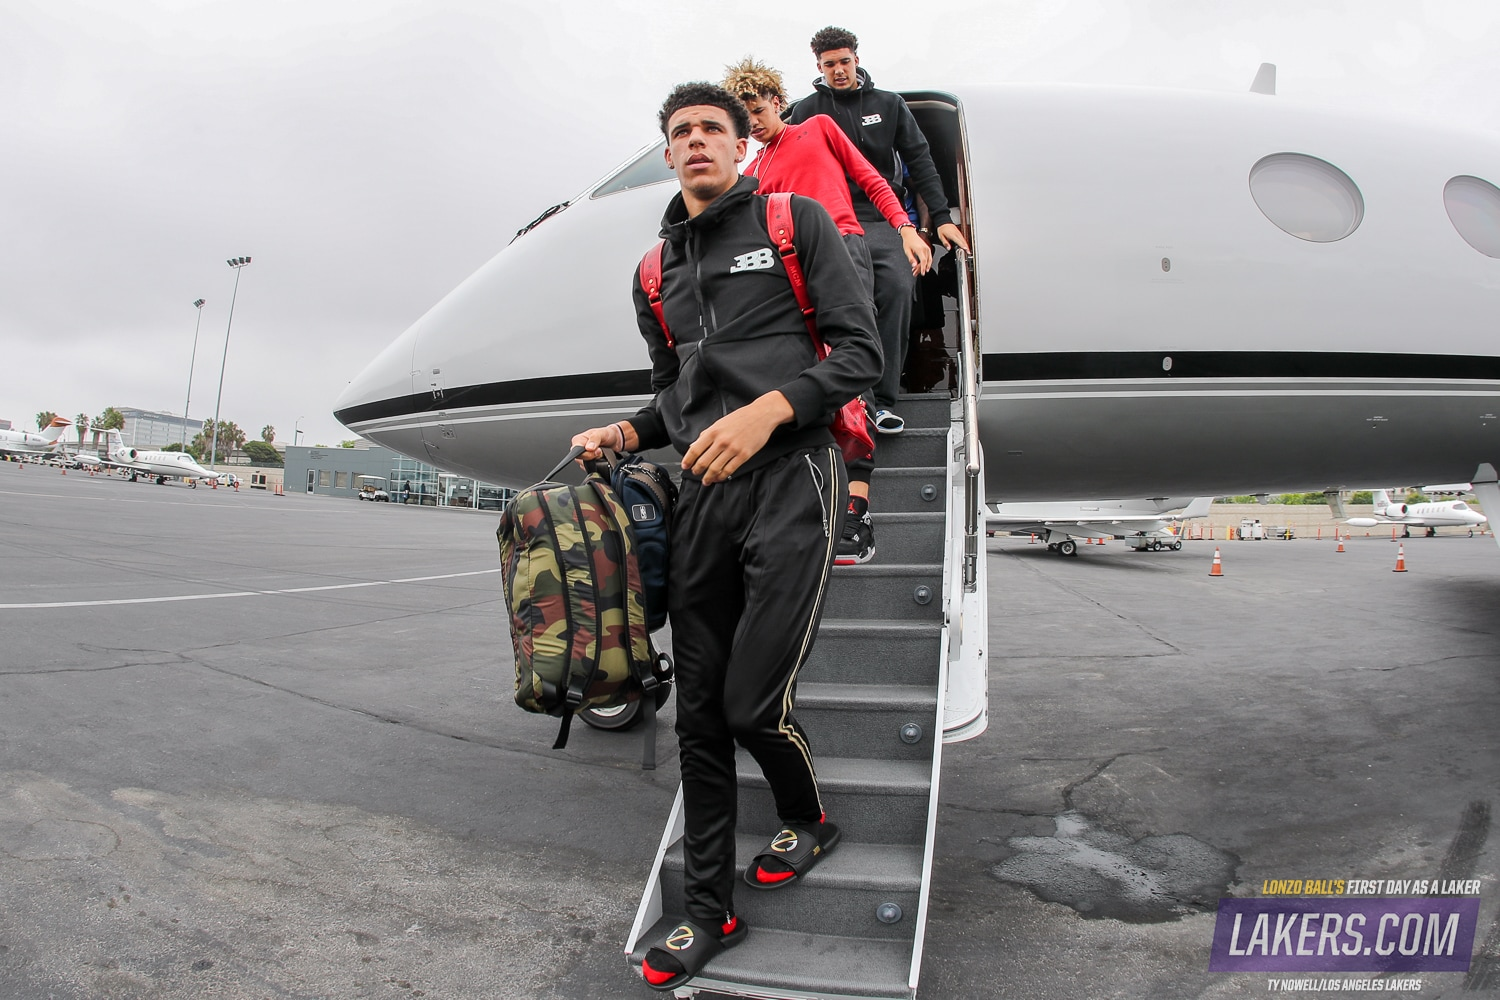 A day in photos lonzos first day as a laker los angeles lakers lonzo and his brothers step off the plane voltagebd Images